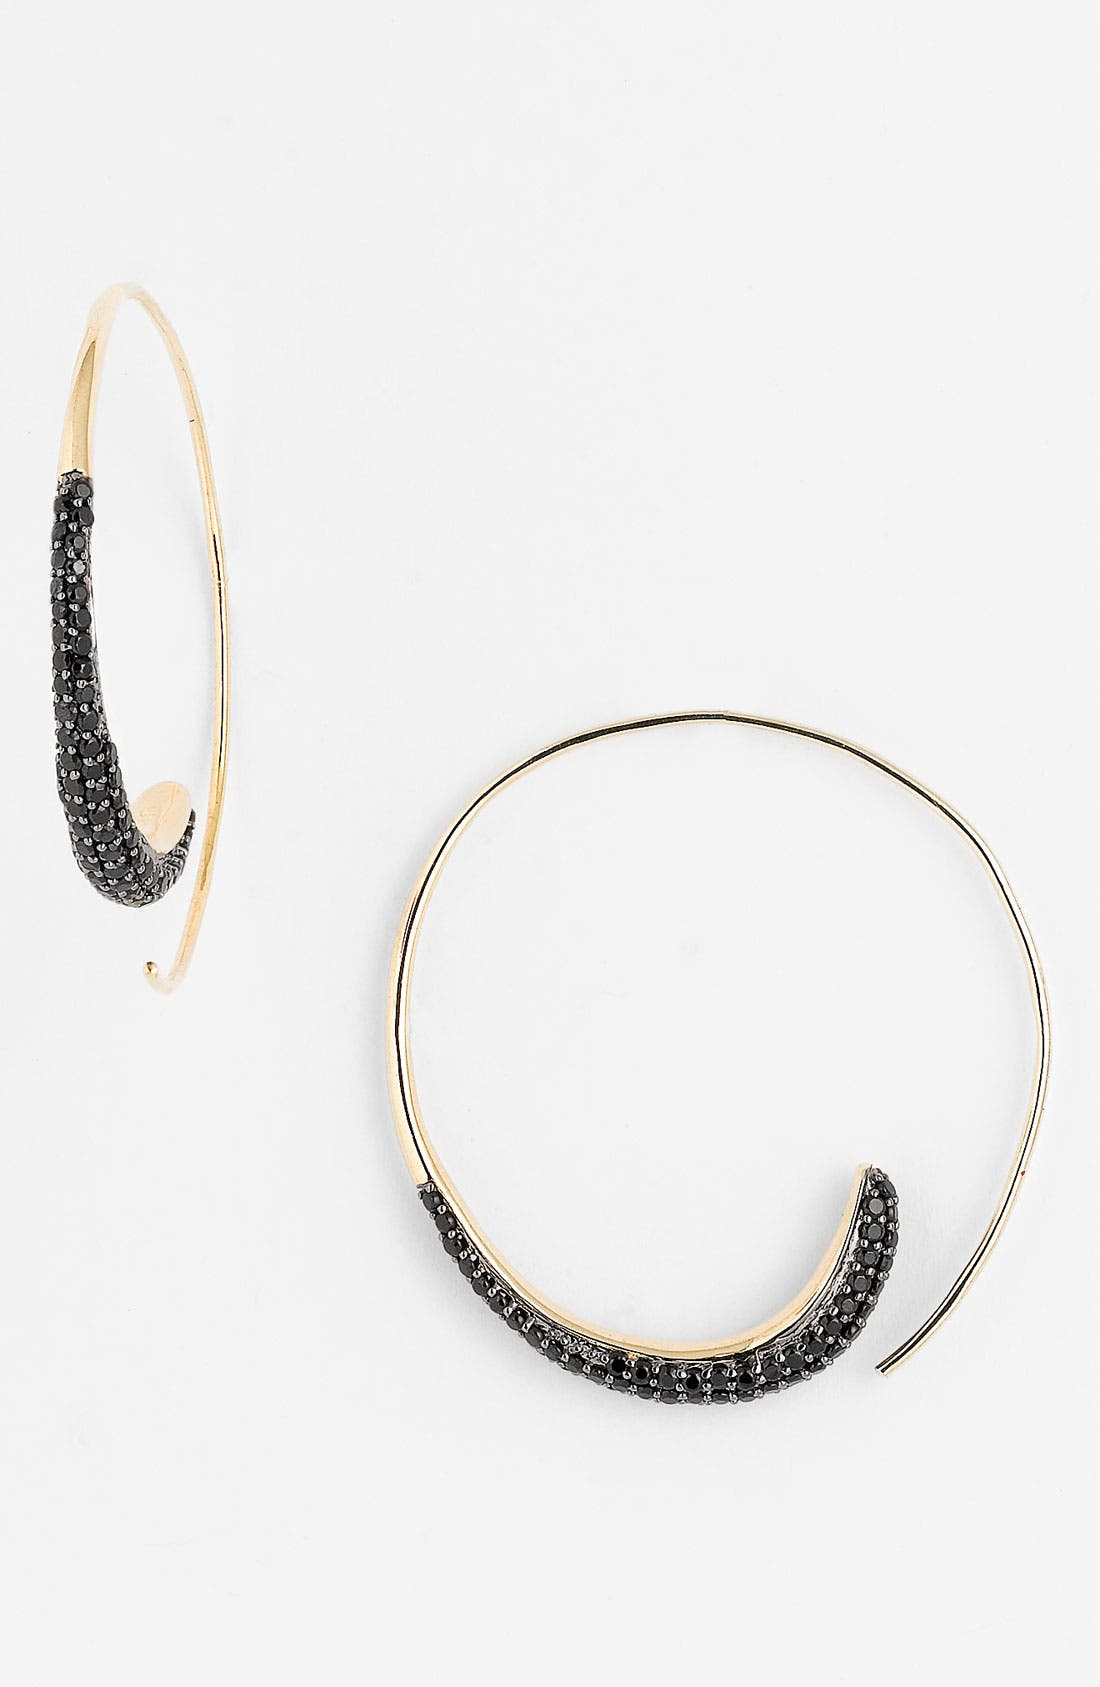 Main Image - Tom Binns 'Bejewelled' Swirl Hoop Earrings